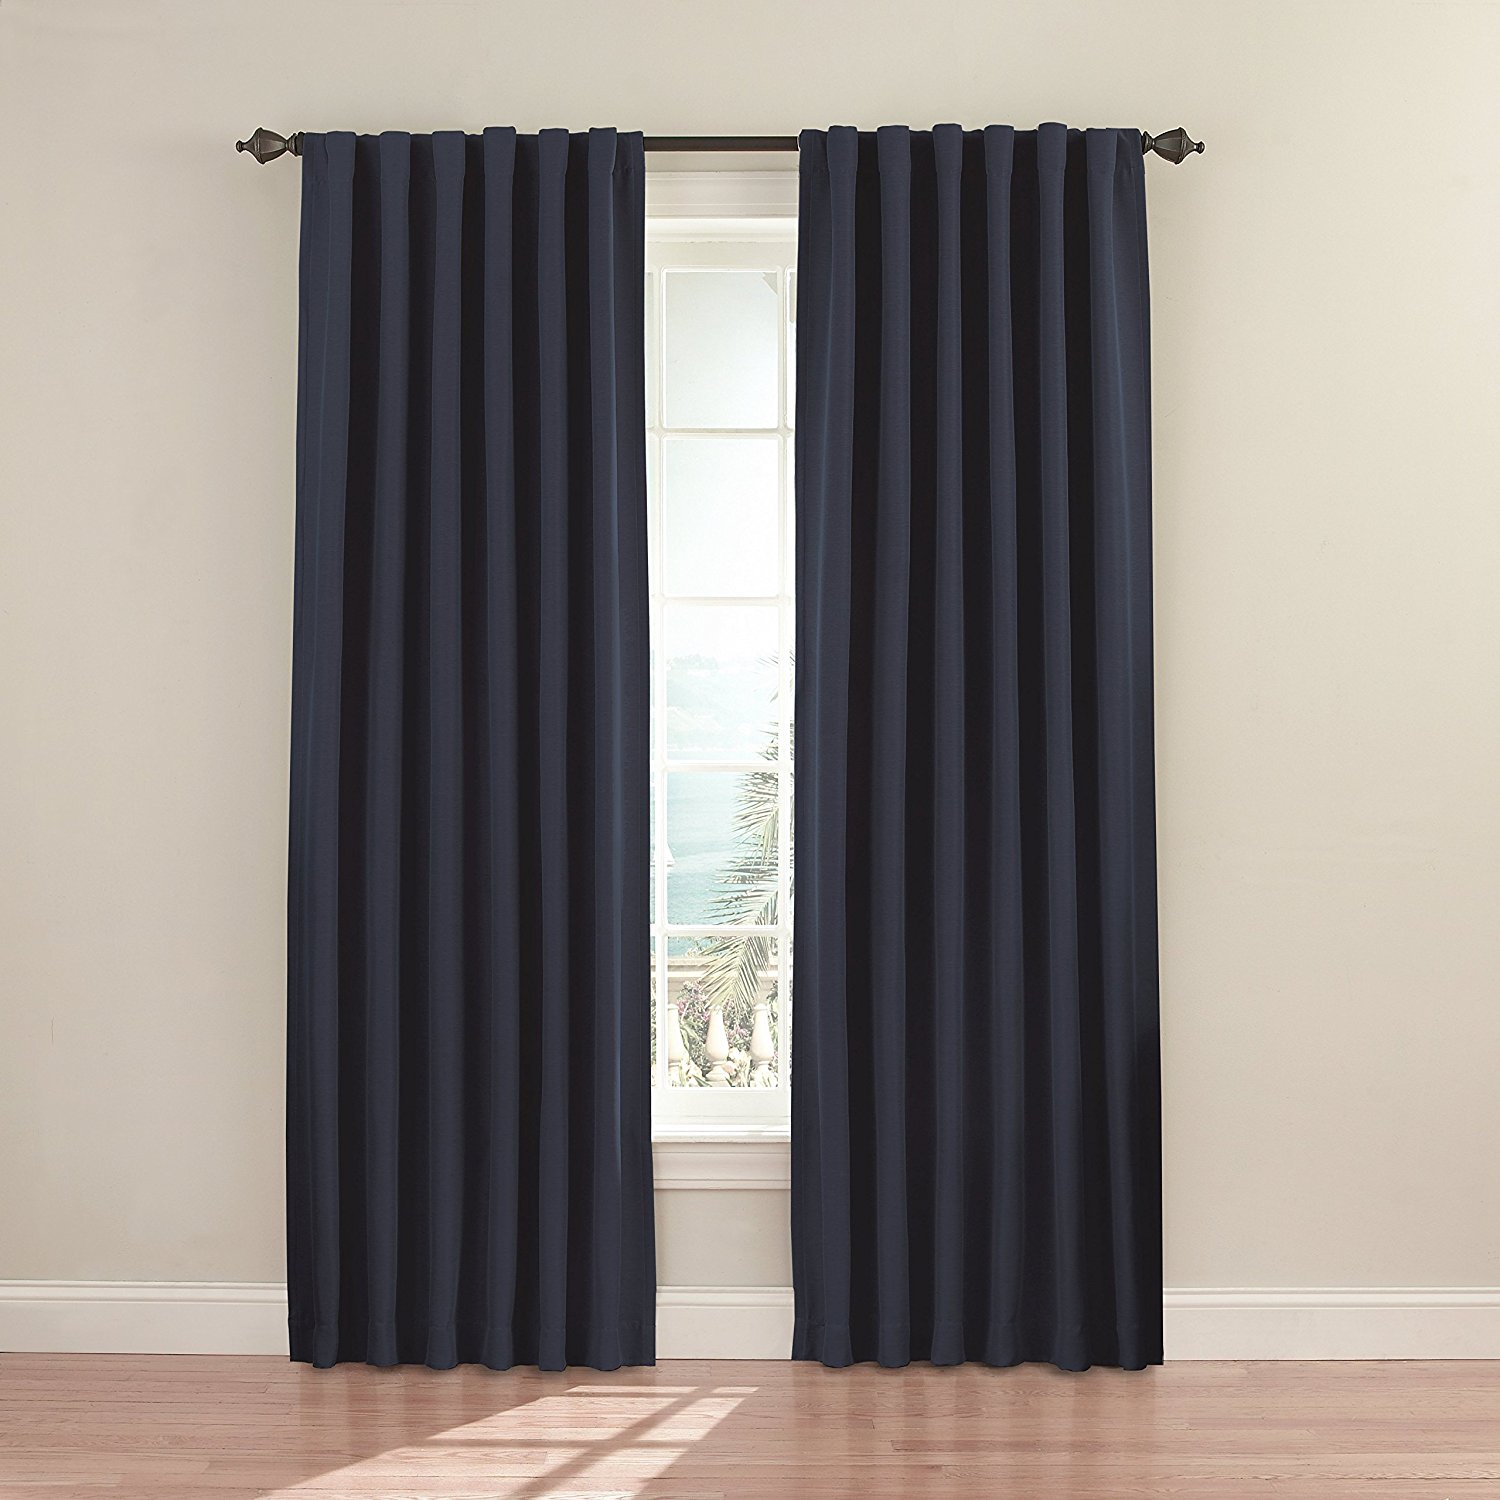 Eclipse 11353052x084bk Fresno 52 Inch84 Inch Blackout Single Window Curtain Panel, Blackeclipse Curtains Ship From Us Inside Eclipse Kendall Blackout Window Curtain Panels (View 16 of 20)